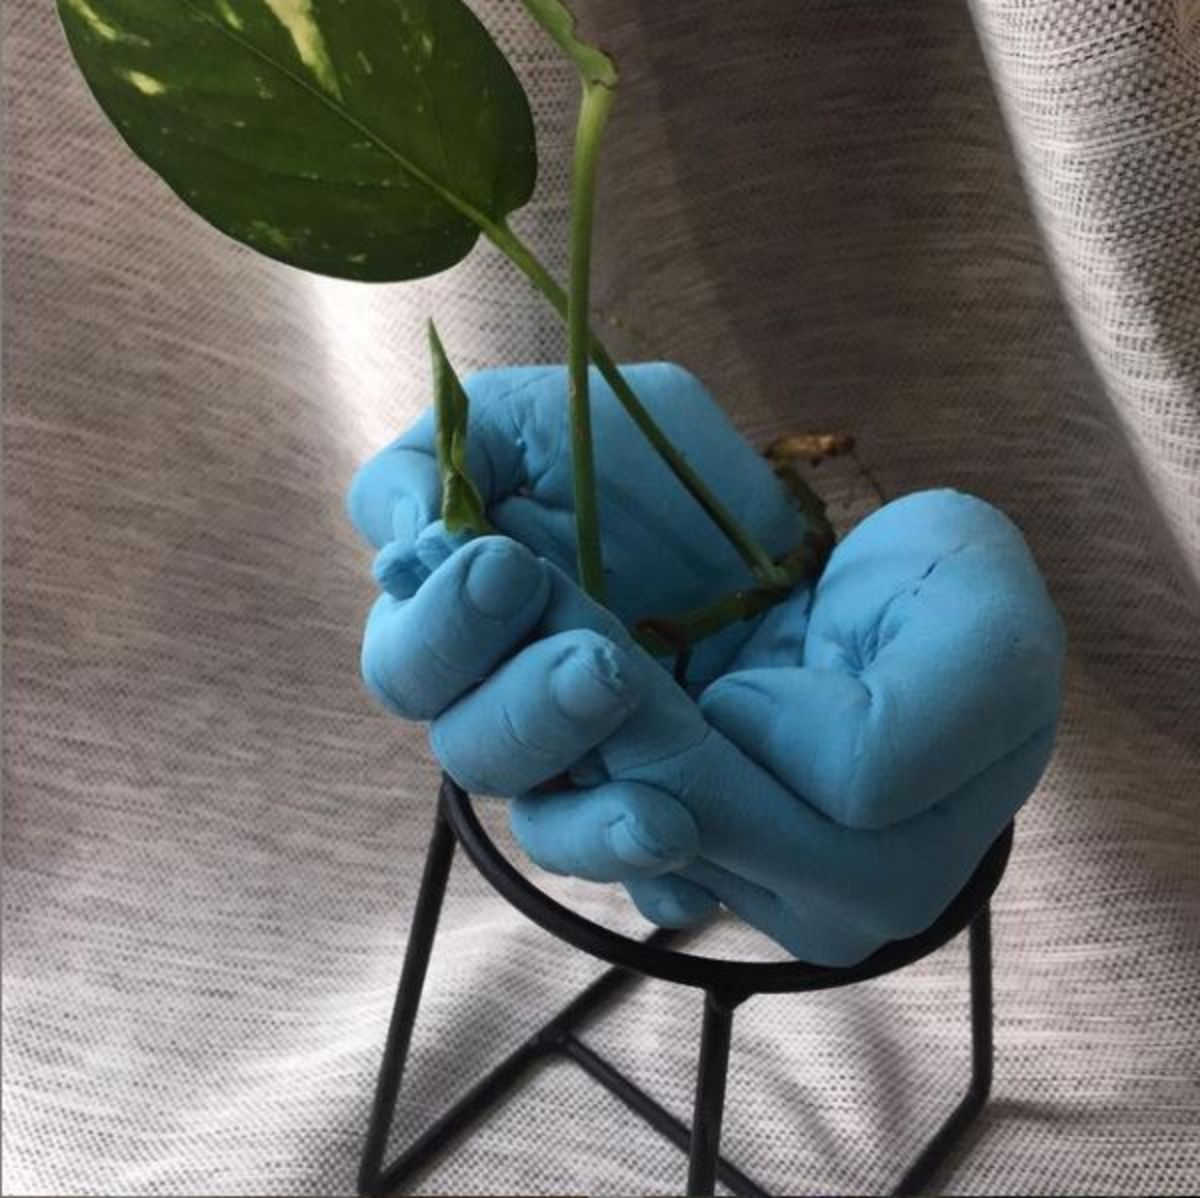 painted blue hand planter, hand shaped pot. with a plant